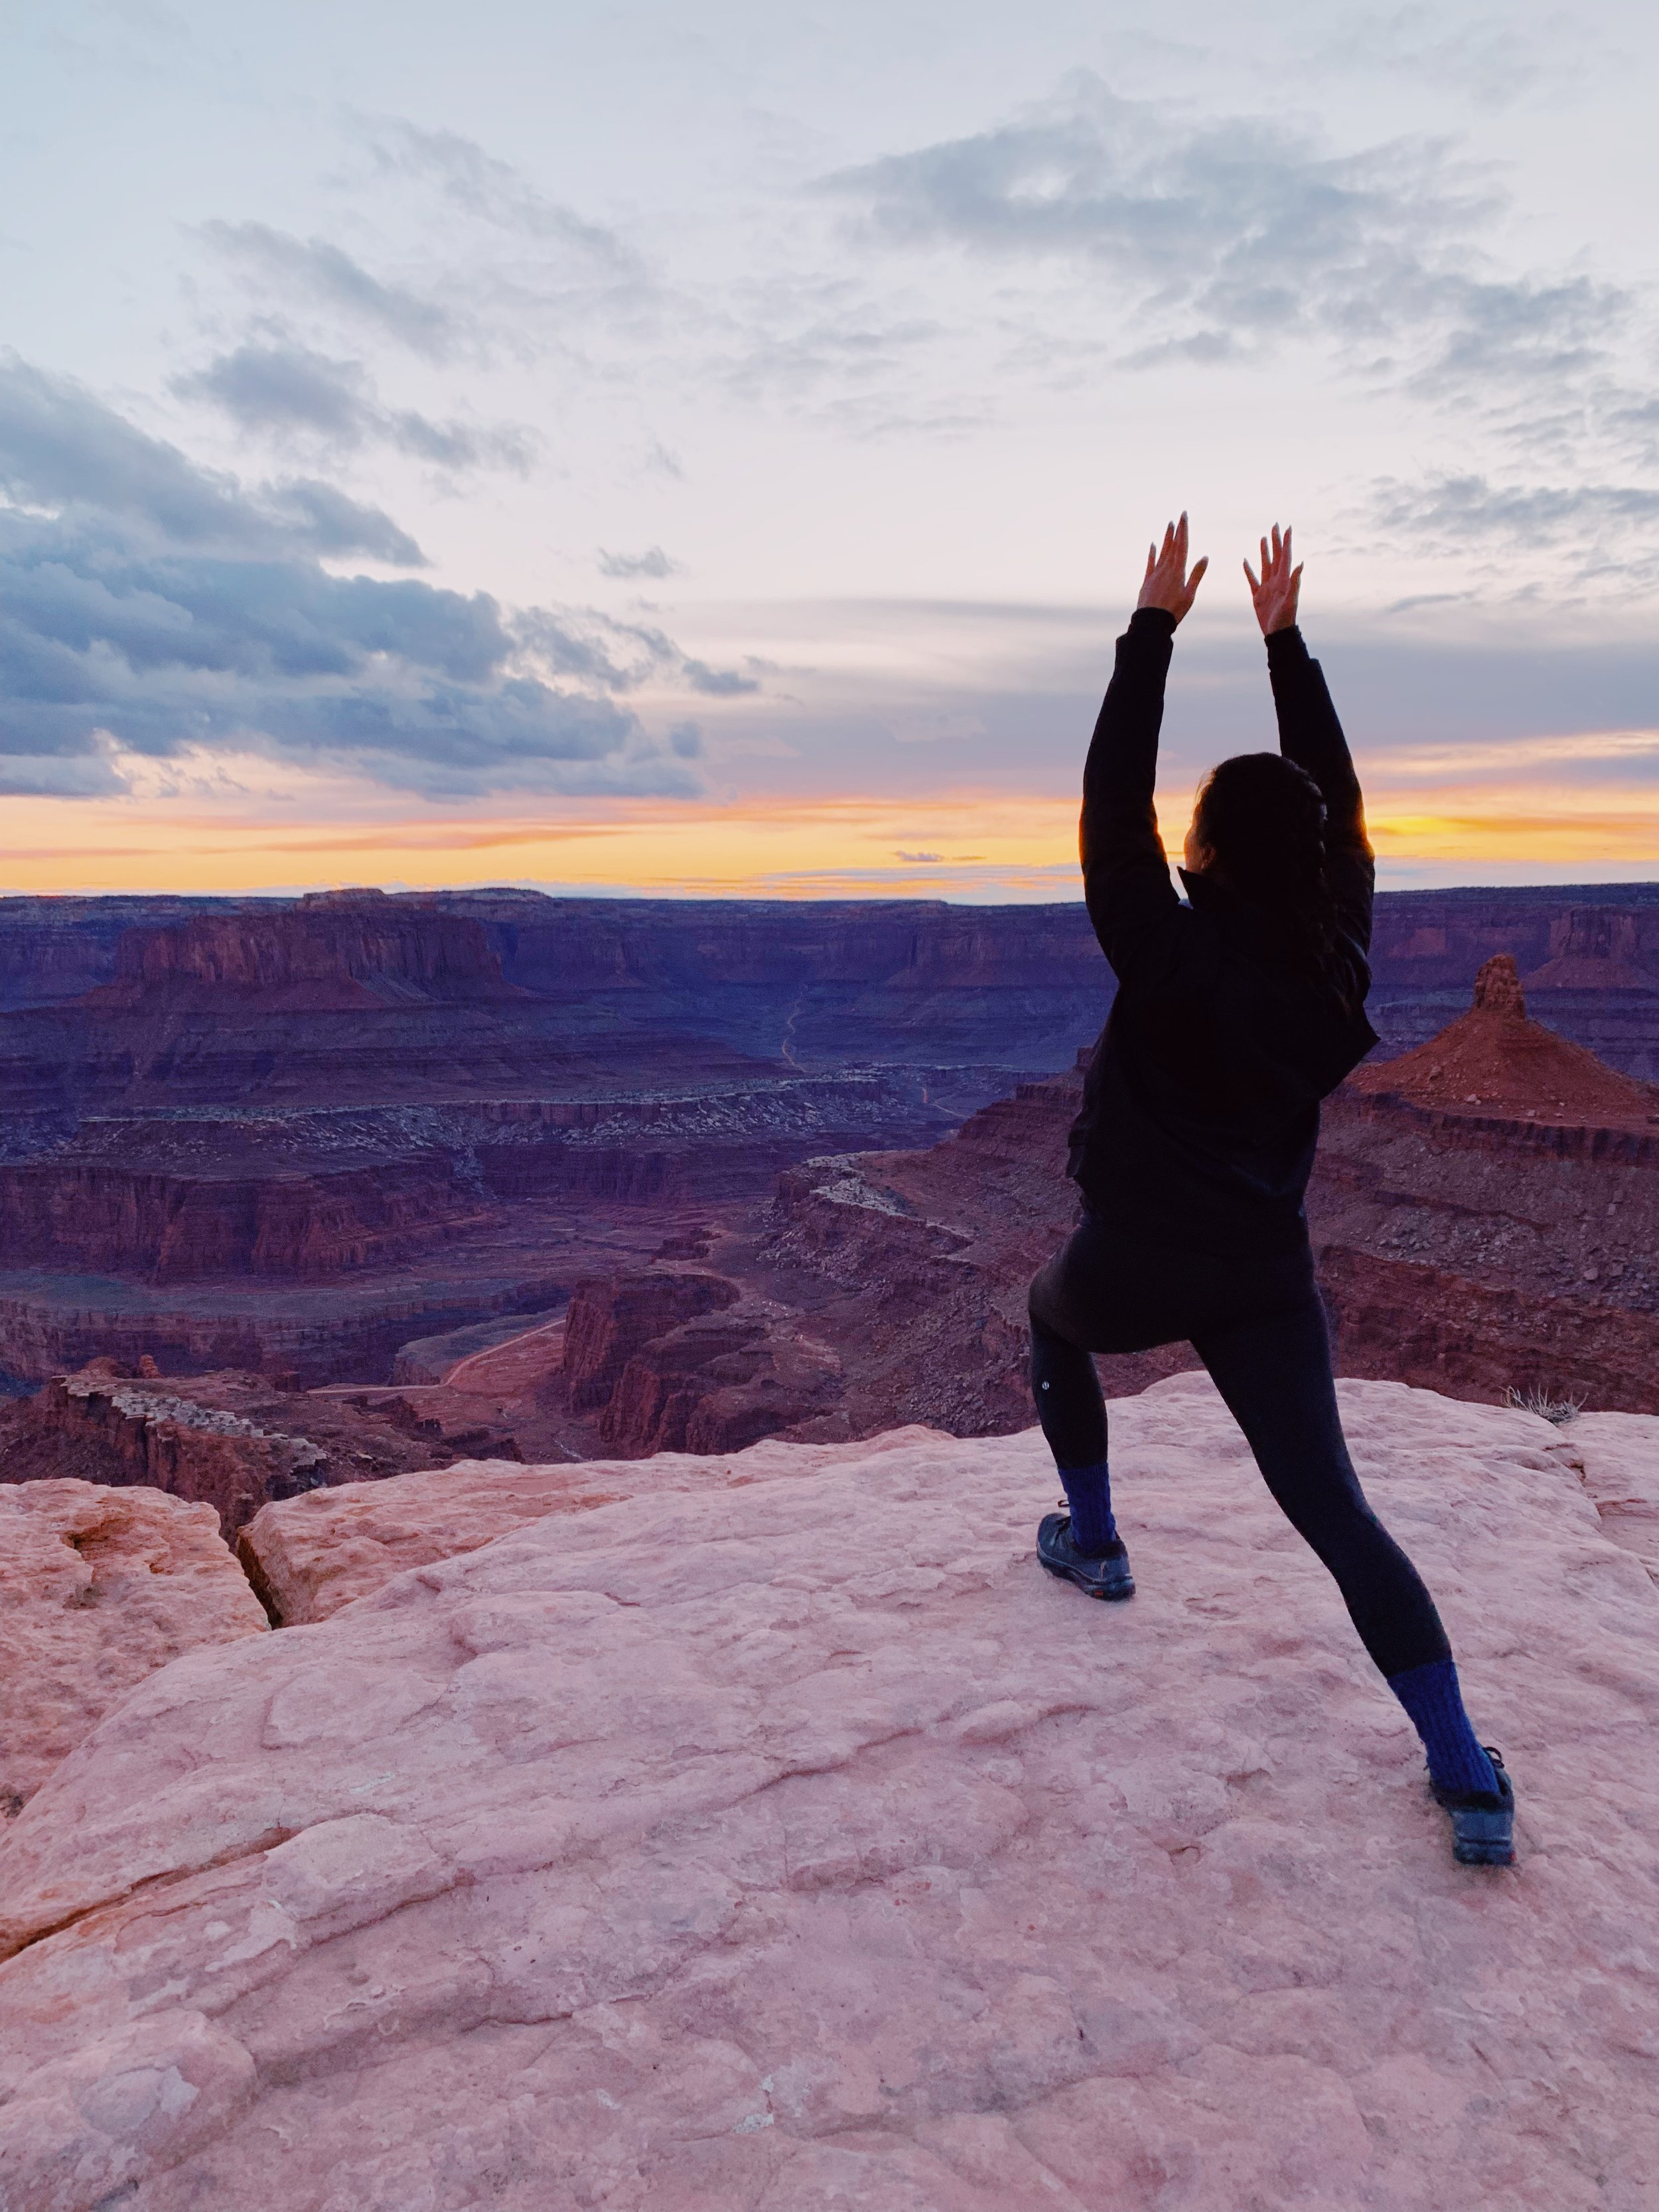 Obligatory random yoga pose @ Dead Horse Point